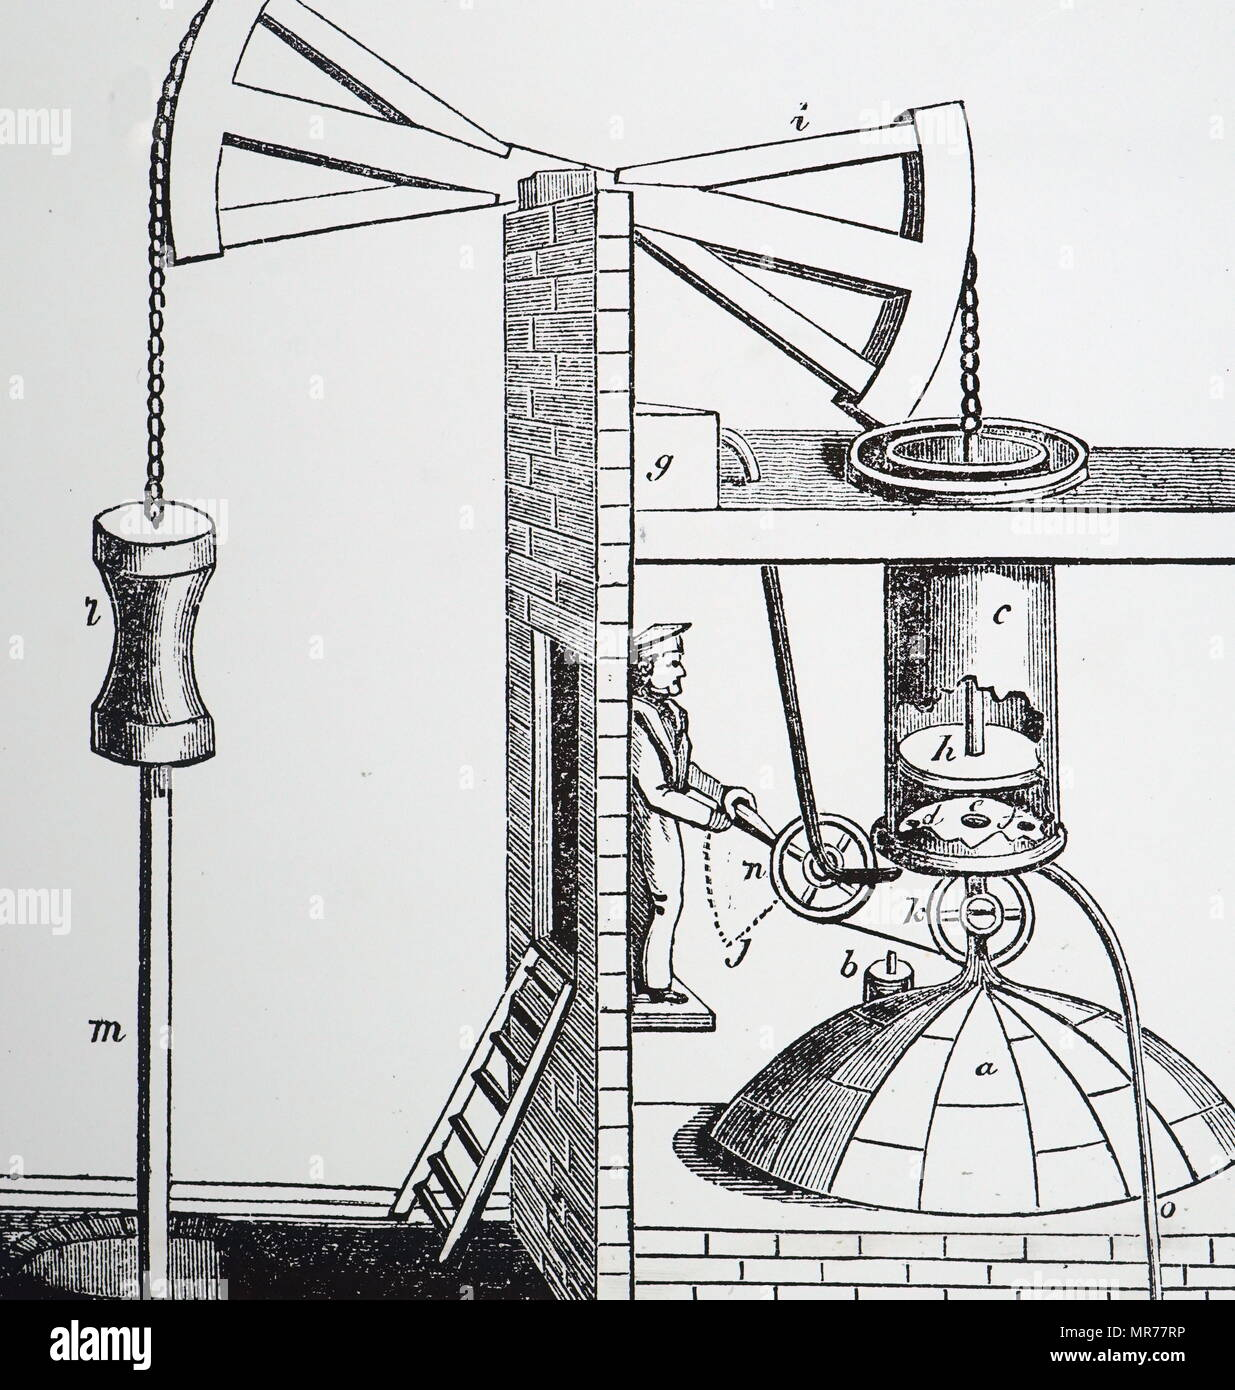 Engraving depicting Thomas Newcomen's atmospheric steam engine, 1705. The boiler is at A), and the piston H), is pushed by steam up the open cylinder C): it descends due to atmospheric pressure when steam in the cylinder is cooled and condensed by water from cistern, G). Thomas Newcomen (1664-1729) an English inventor who created the first practical steam engine in 1712. Dated 19th century - Stock Image